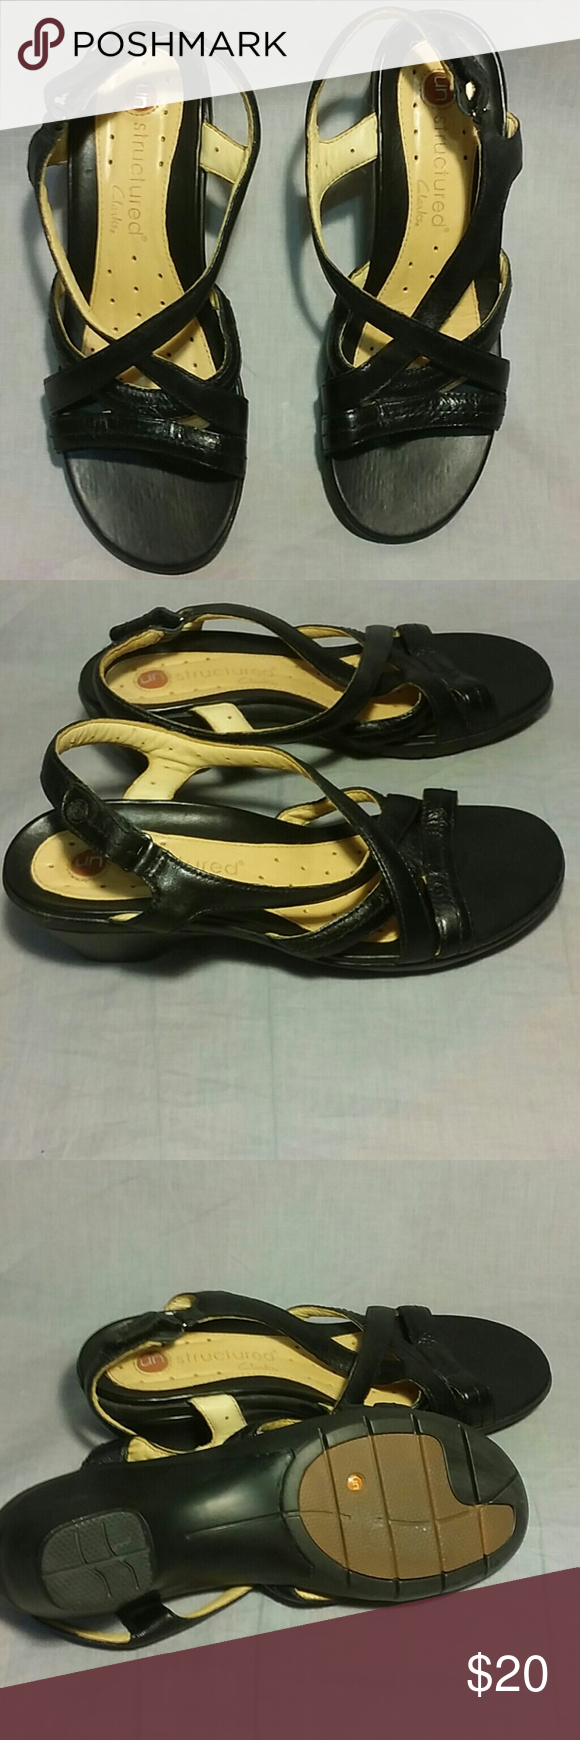 74b786f5538 Structured Clarks sandals black leather size 7 M Women s structured Clarks  sandals black leather size 7